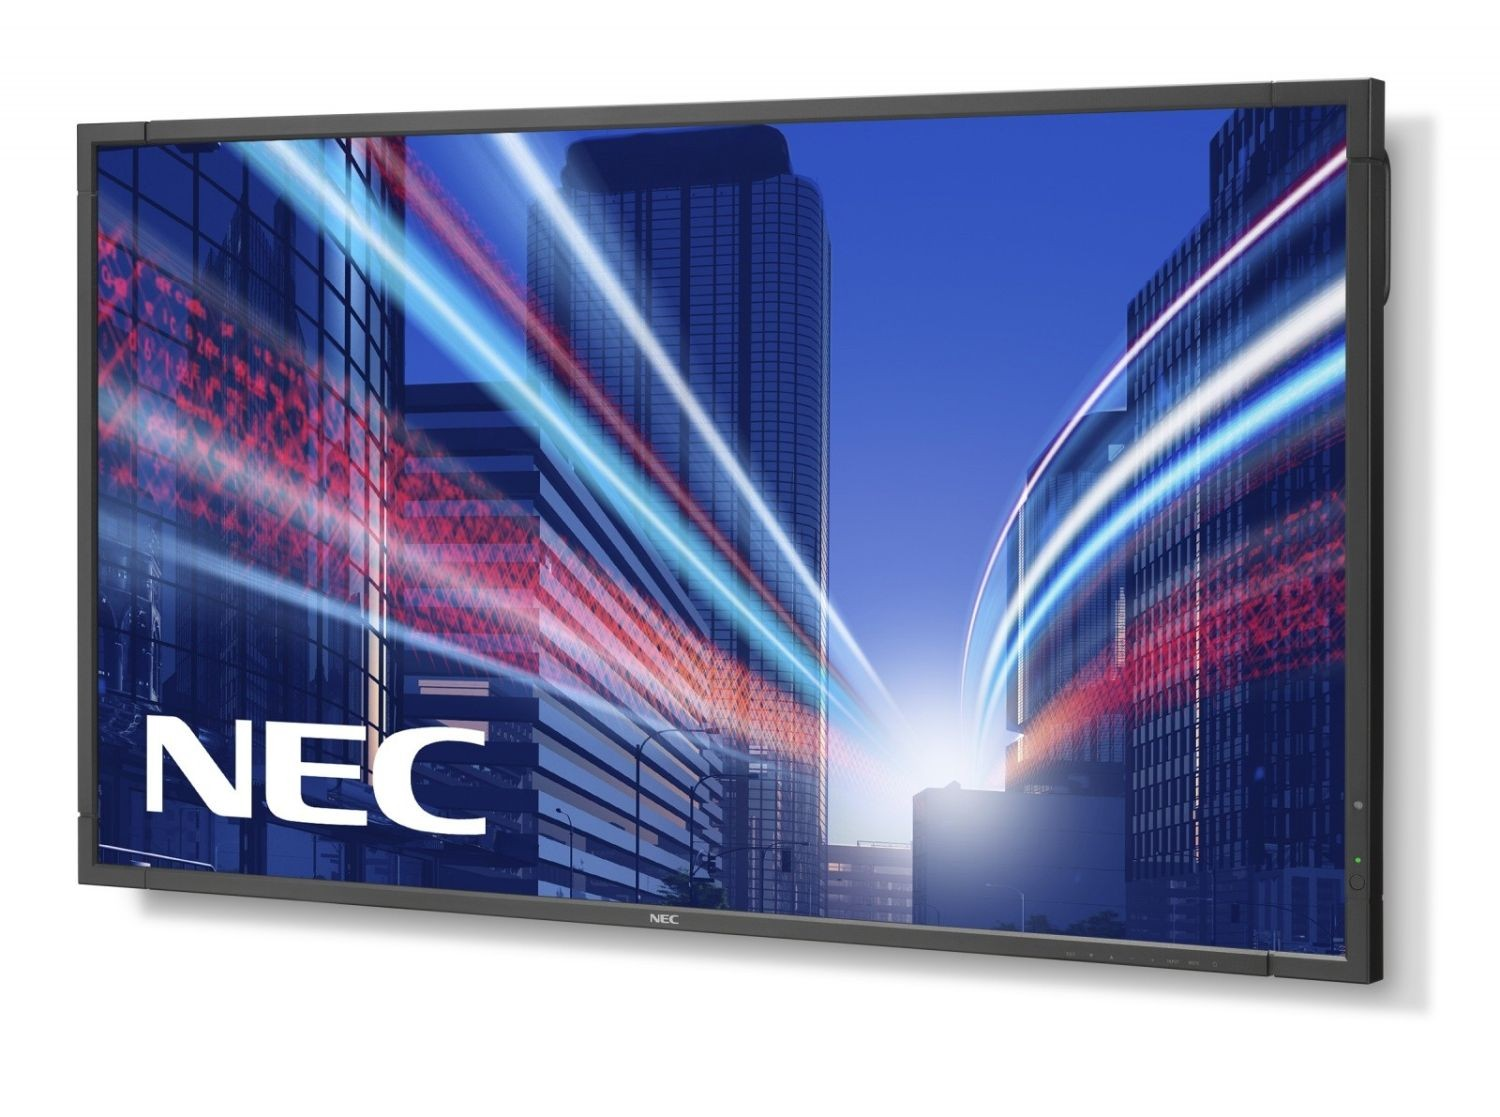 NEC 70' LED E705 FHD, 350cd, 12/7